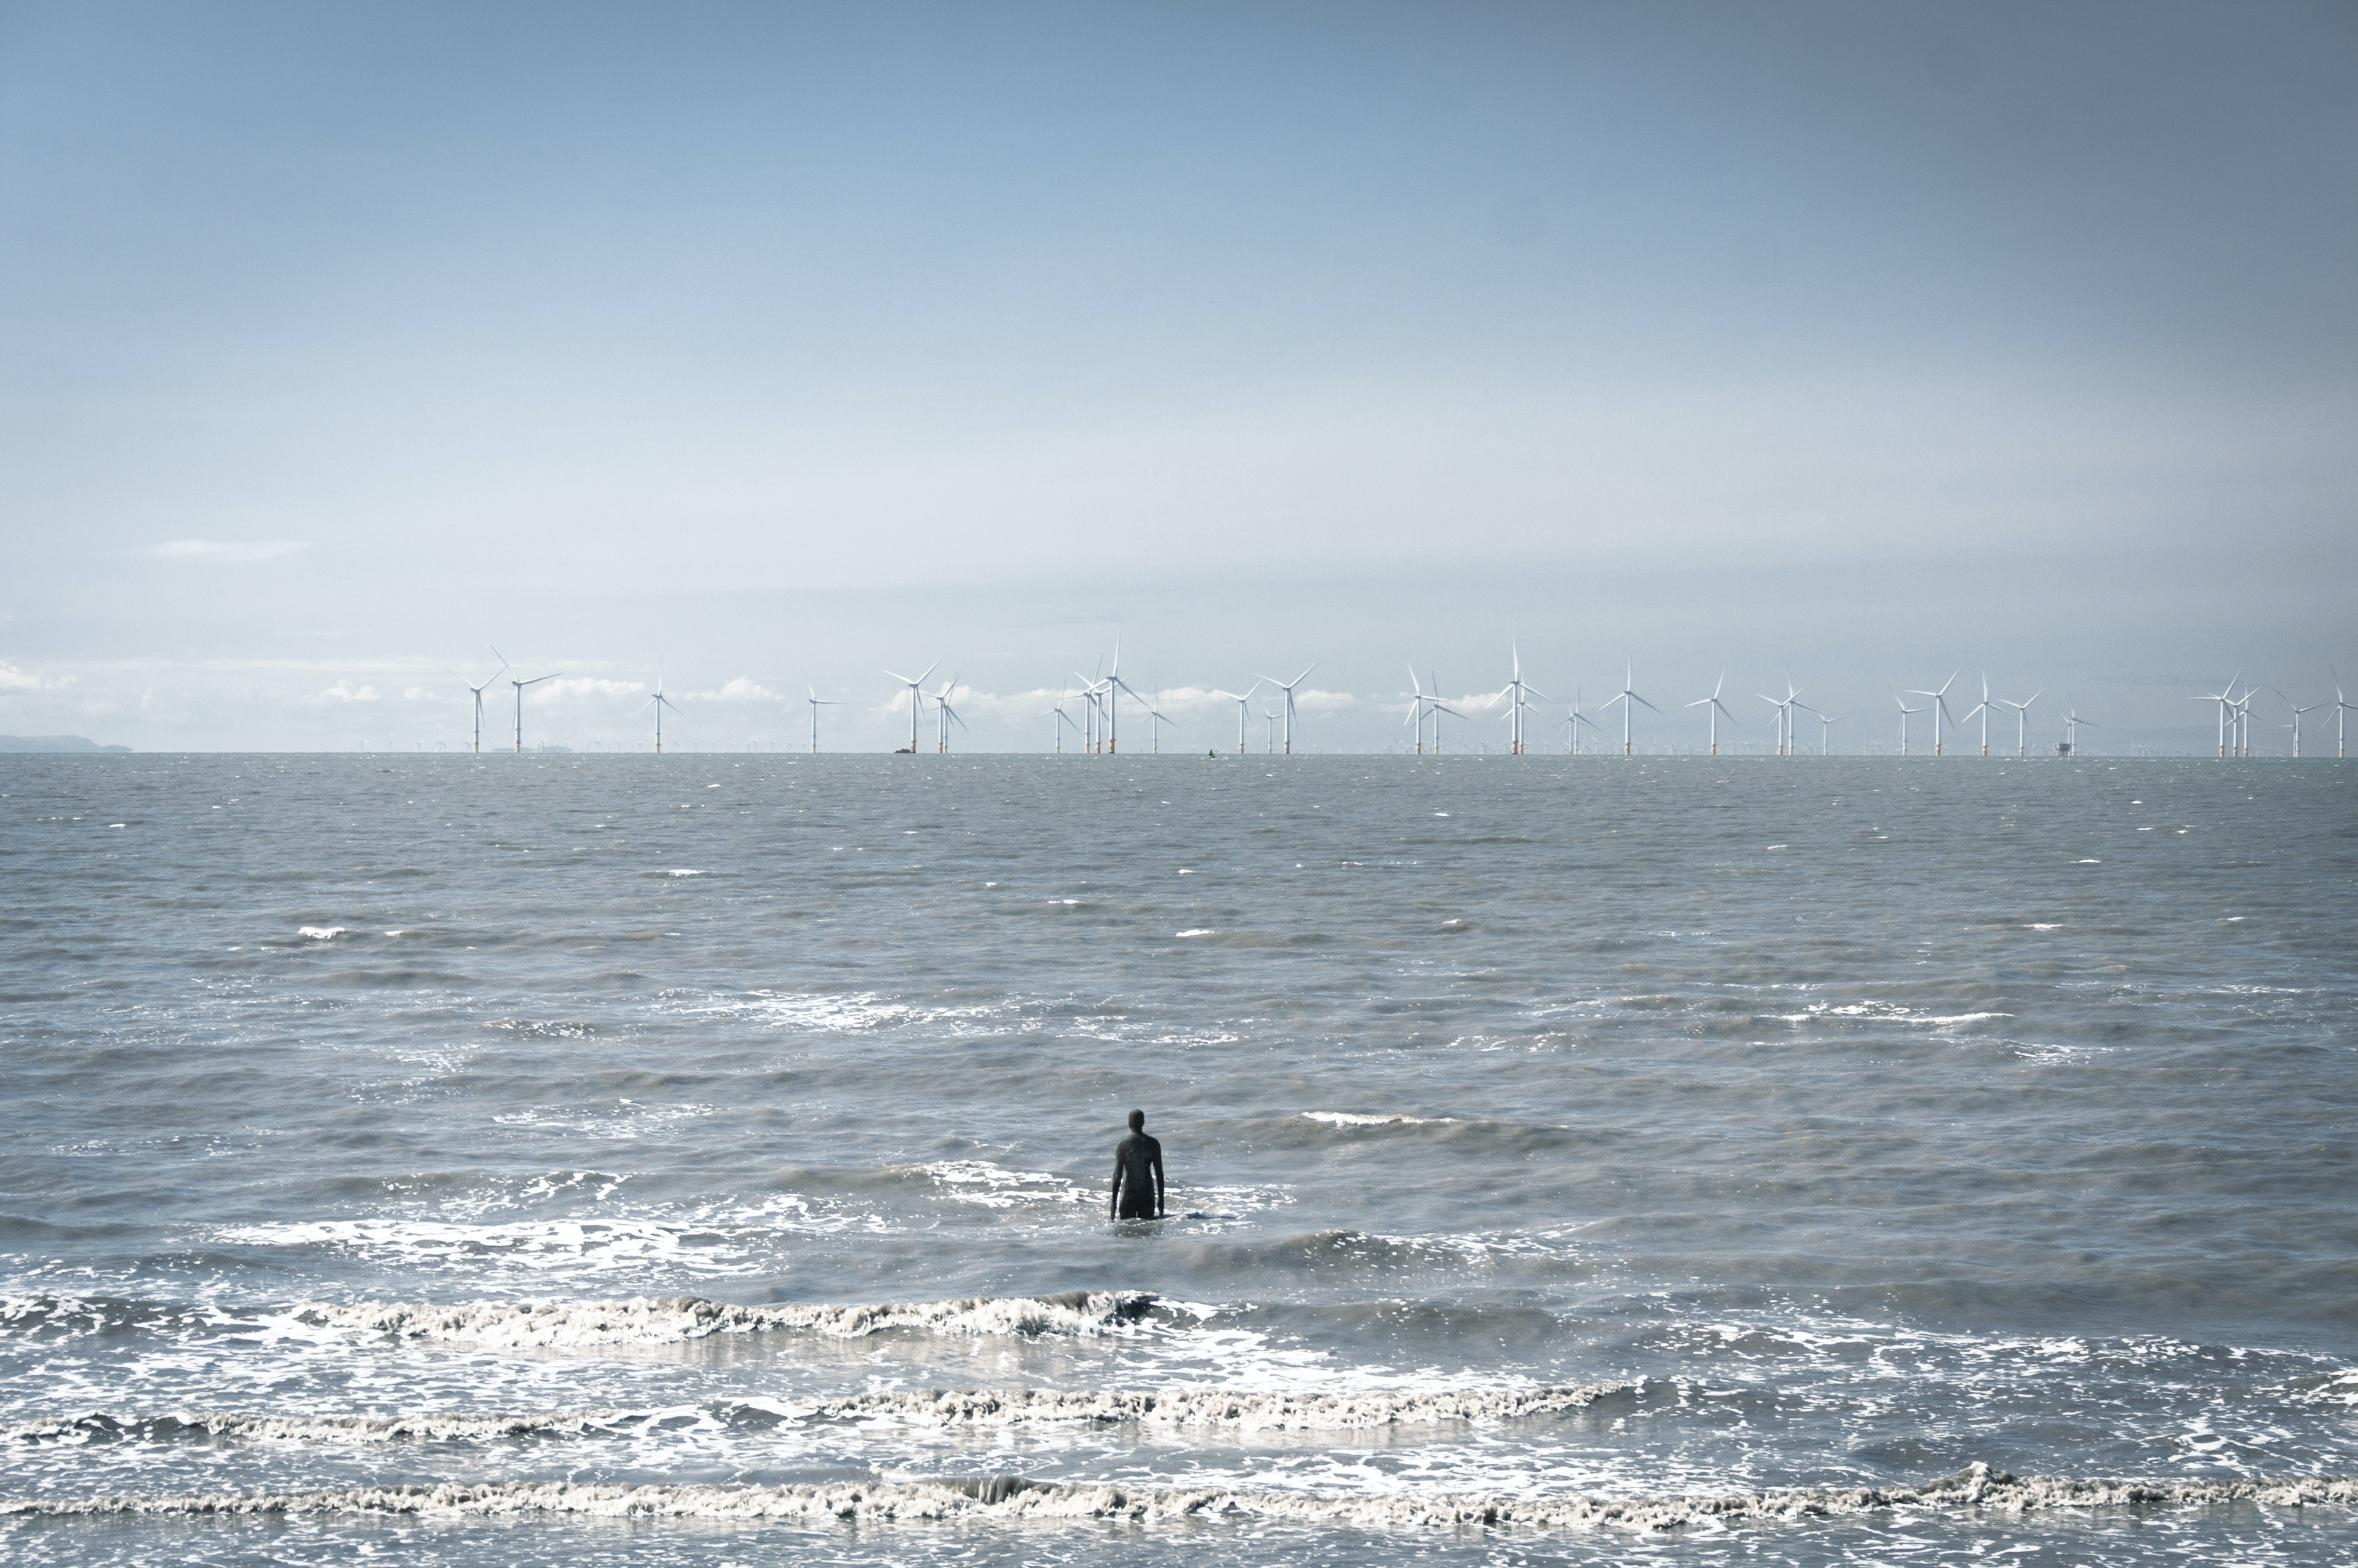 person on body of water in front of windmills during daytime